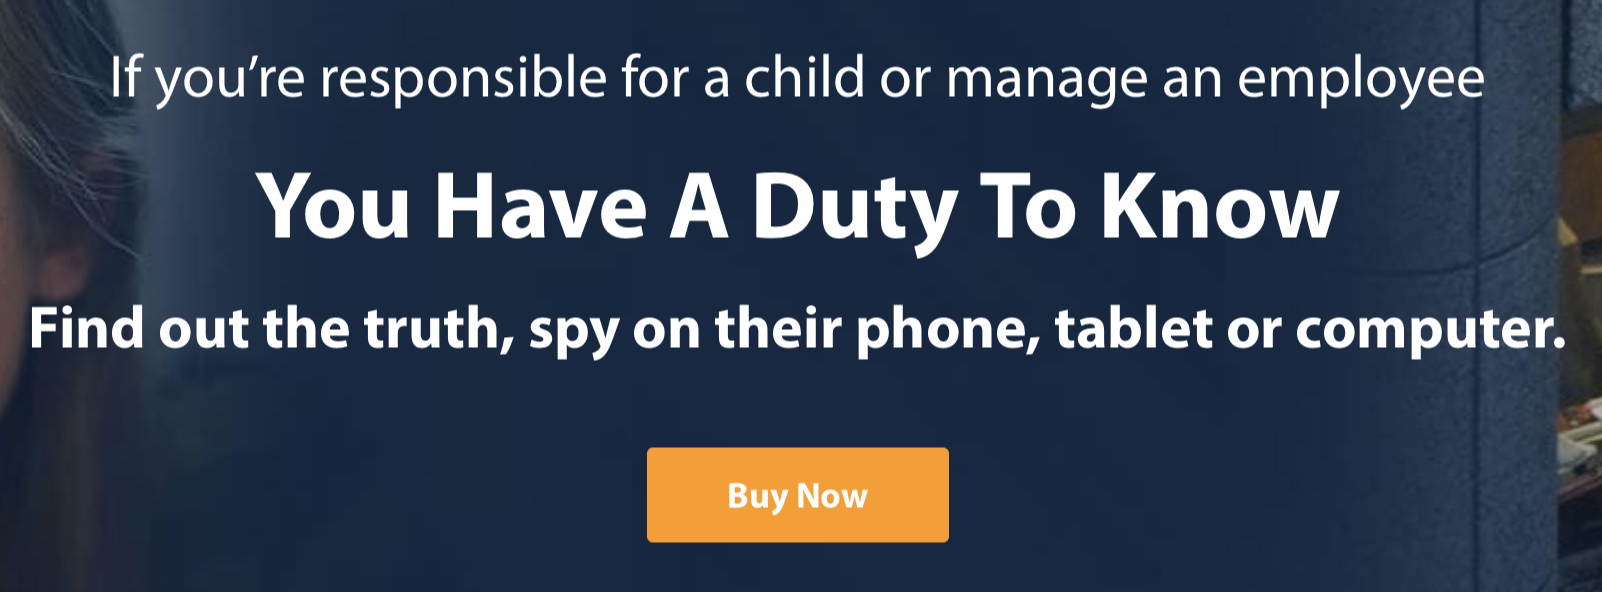 If you're responsible for a child or manage an employee You Have A Duty To Know. Find out the truth, spy on their phone, tablet or computer.